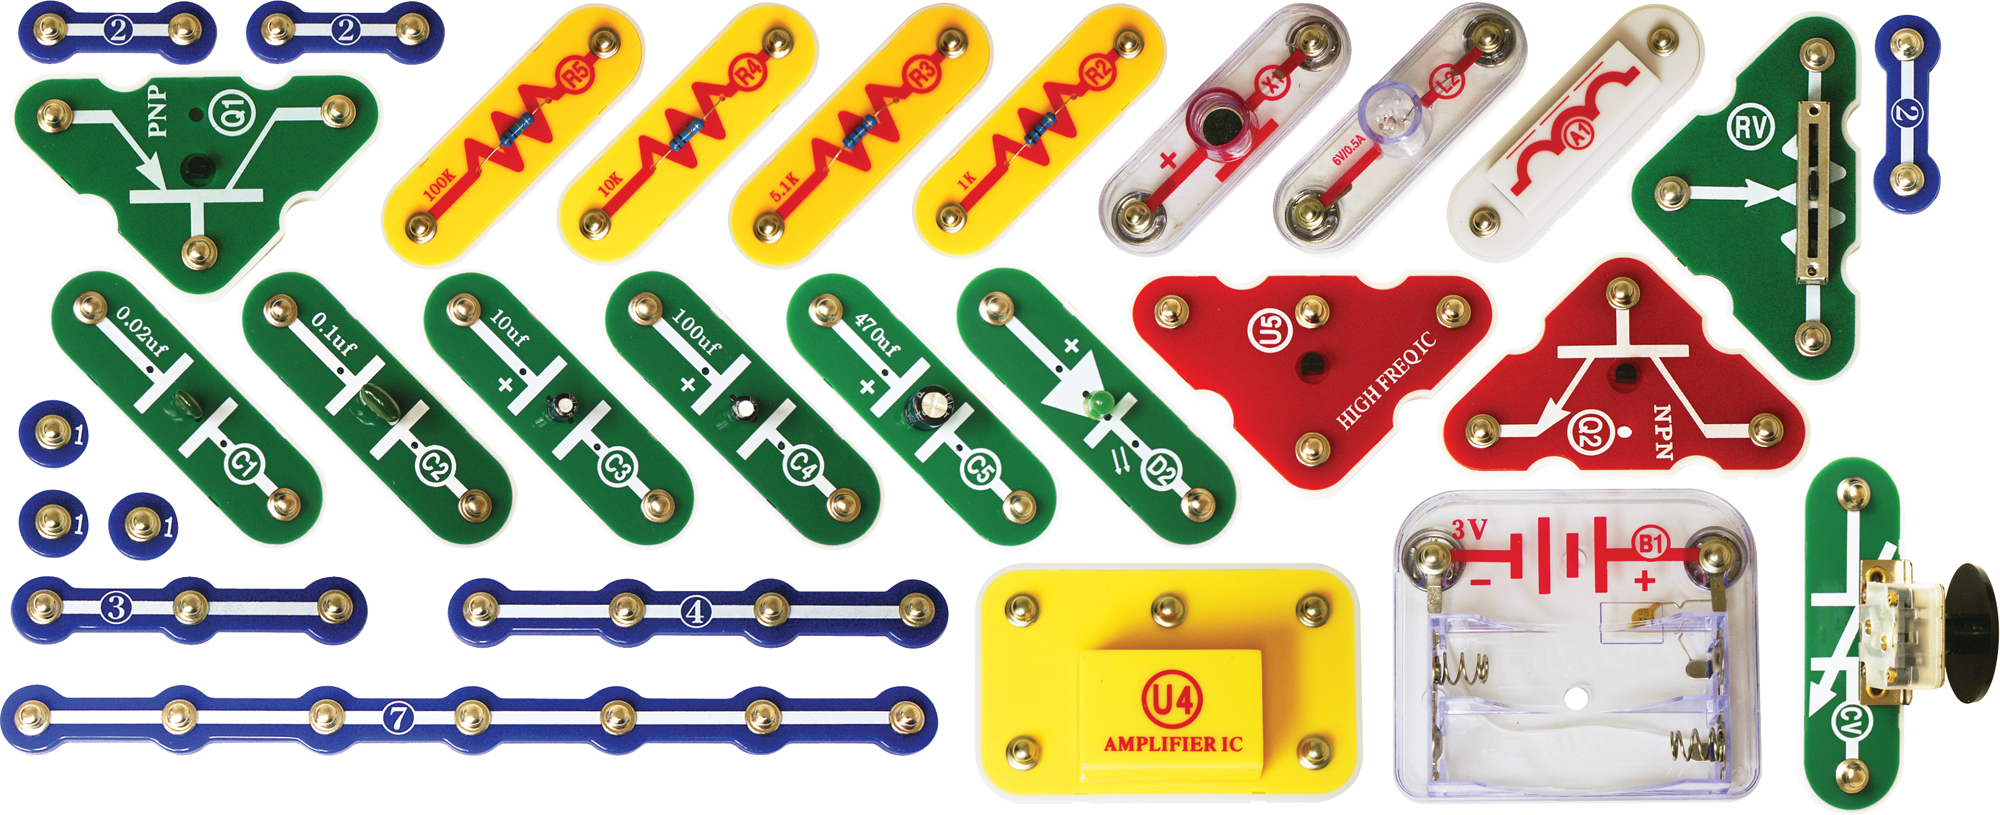 Intro to Electronics with Snap Circuits